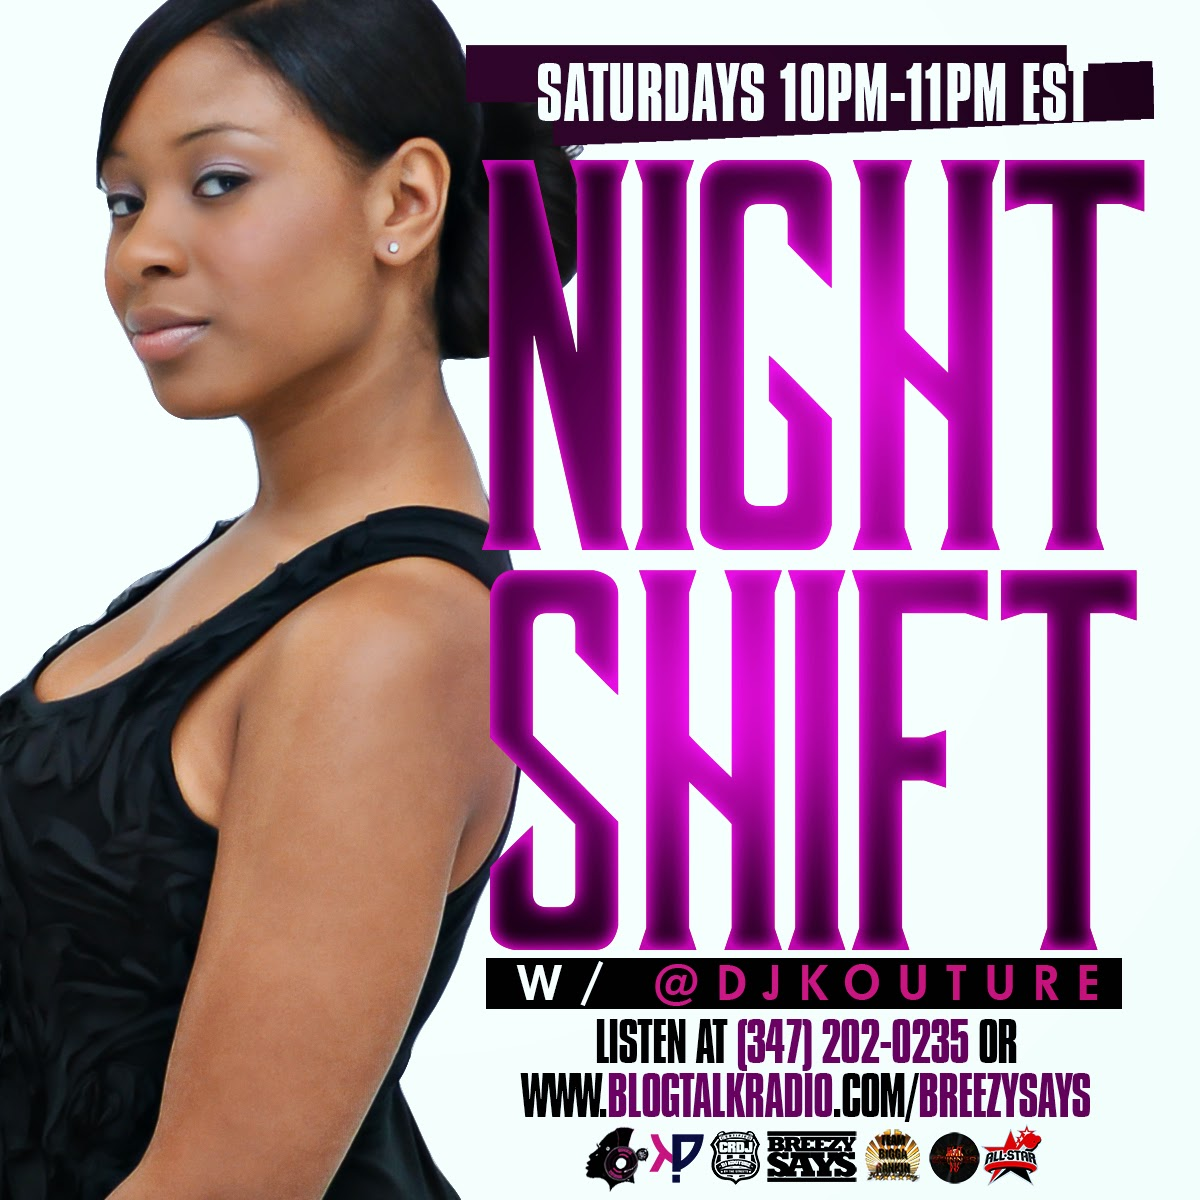 RADIO: THE NIGHT SHIFT, SATURDAYS FROM 10-11PM EST